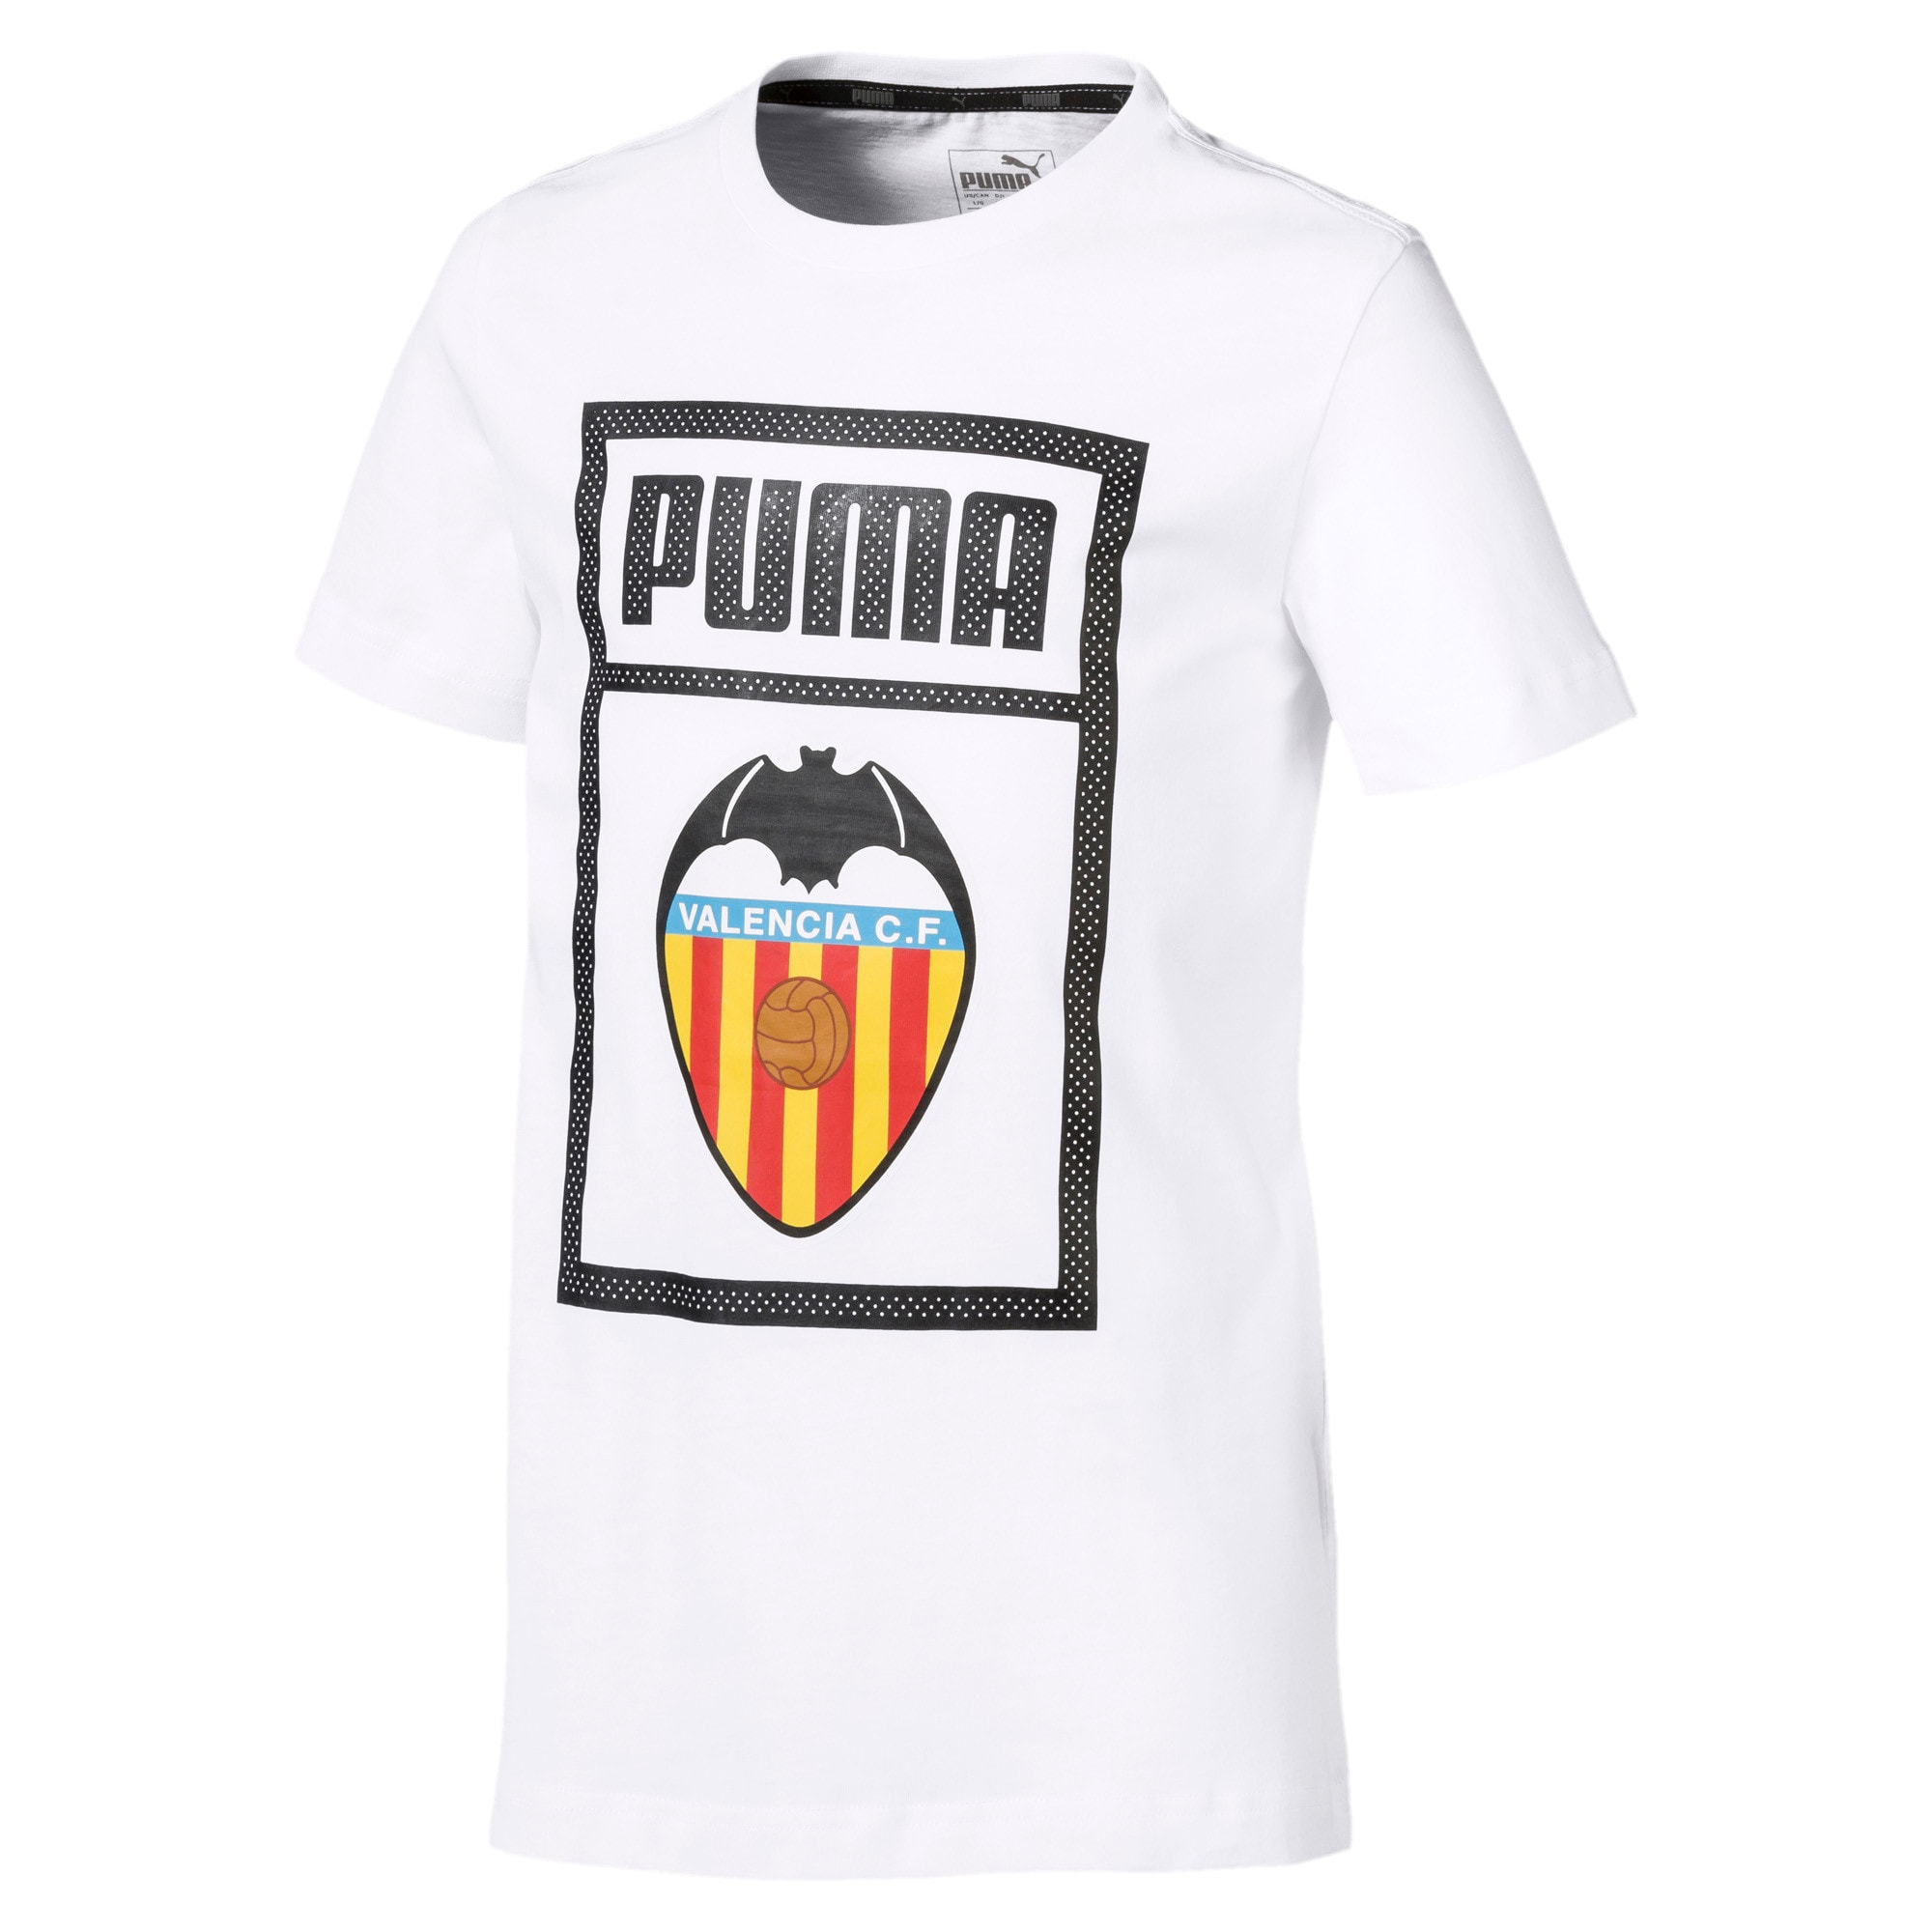 Thumbnail 1 of Valencia CF Shoe Tag Boys' Tee, Puma White, medium